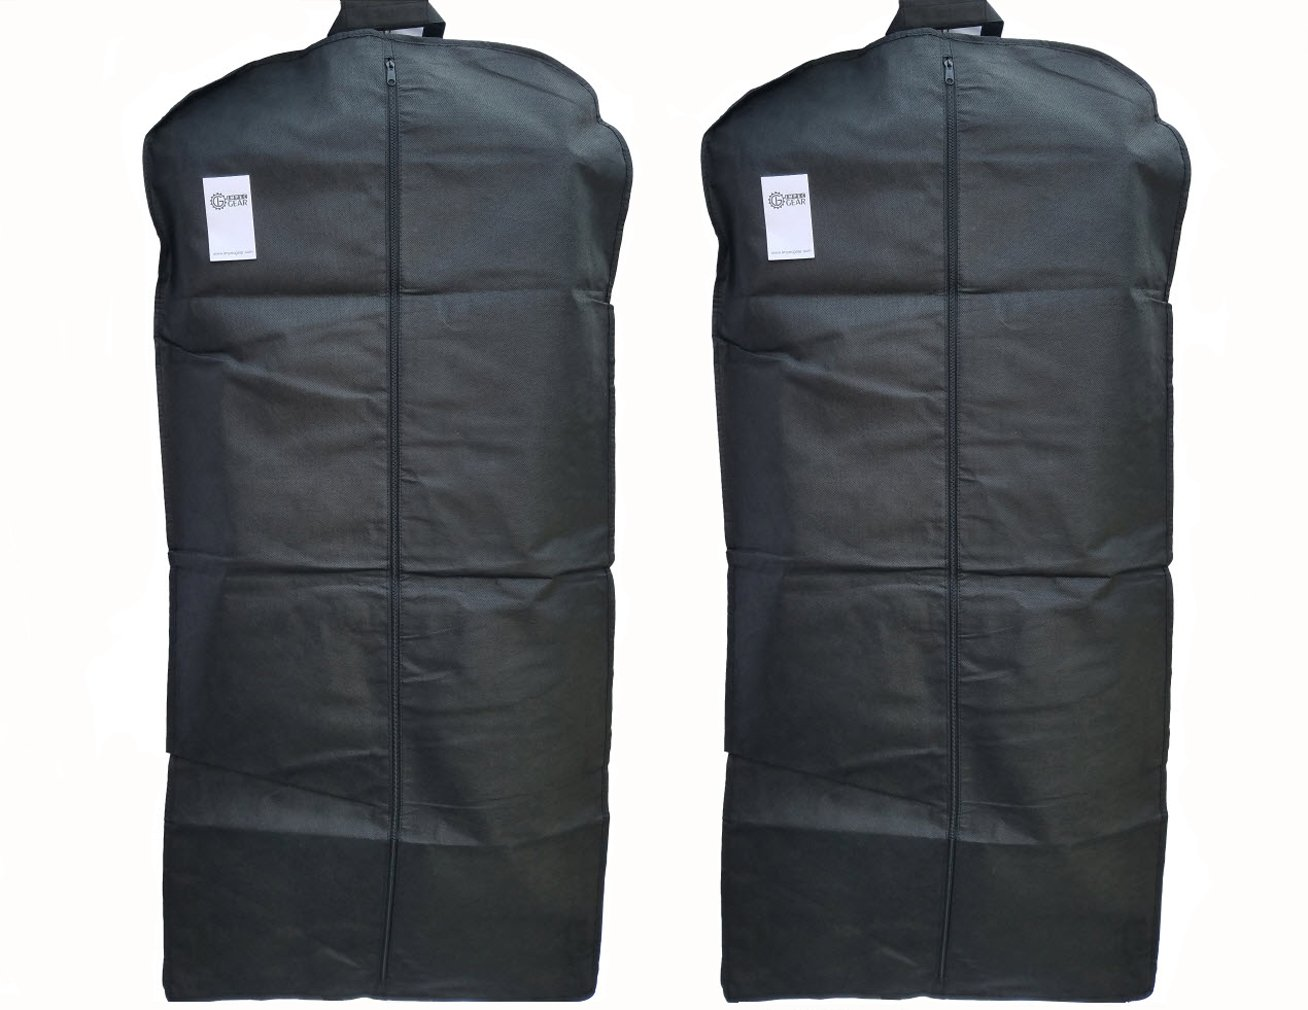 IMPECGEAR NEW 48'' Breathable Gusseted Garment Bag Cover (SET OF 2) - For Suits, Dress, Clothes, Tux, Jersey Storage Travel, Black